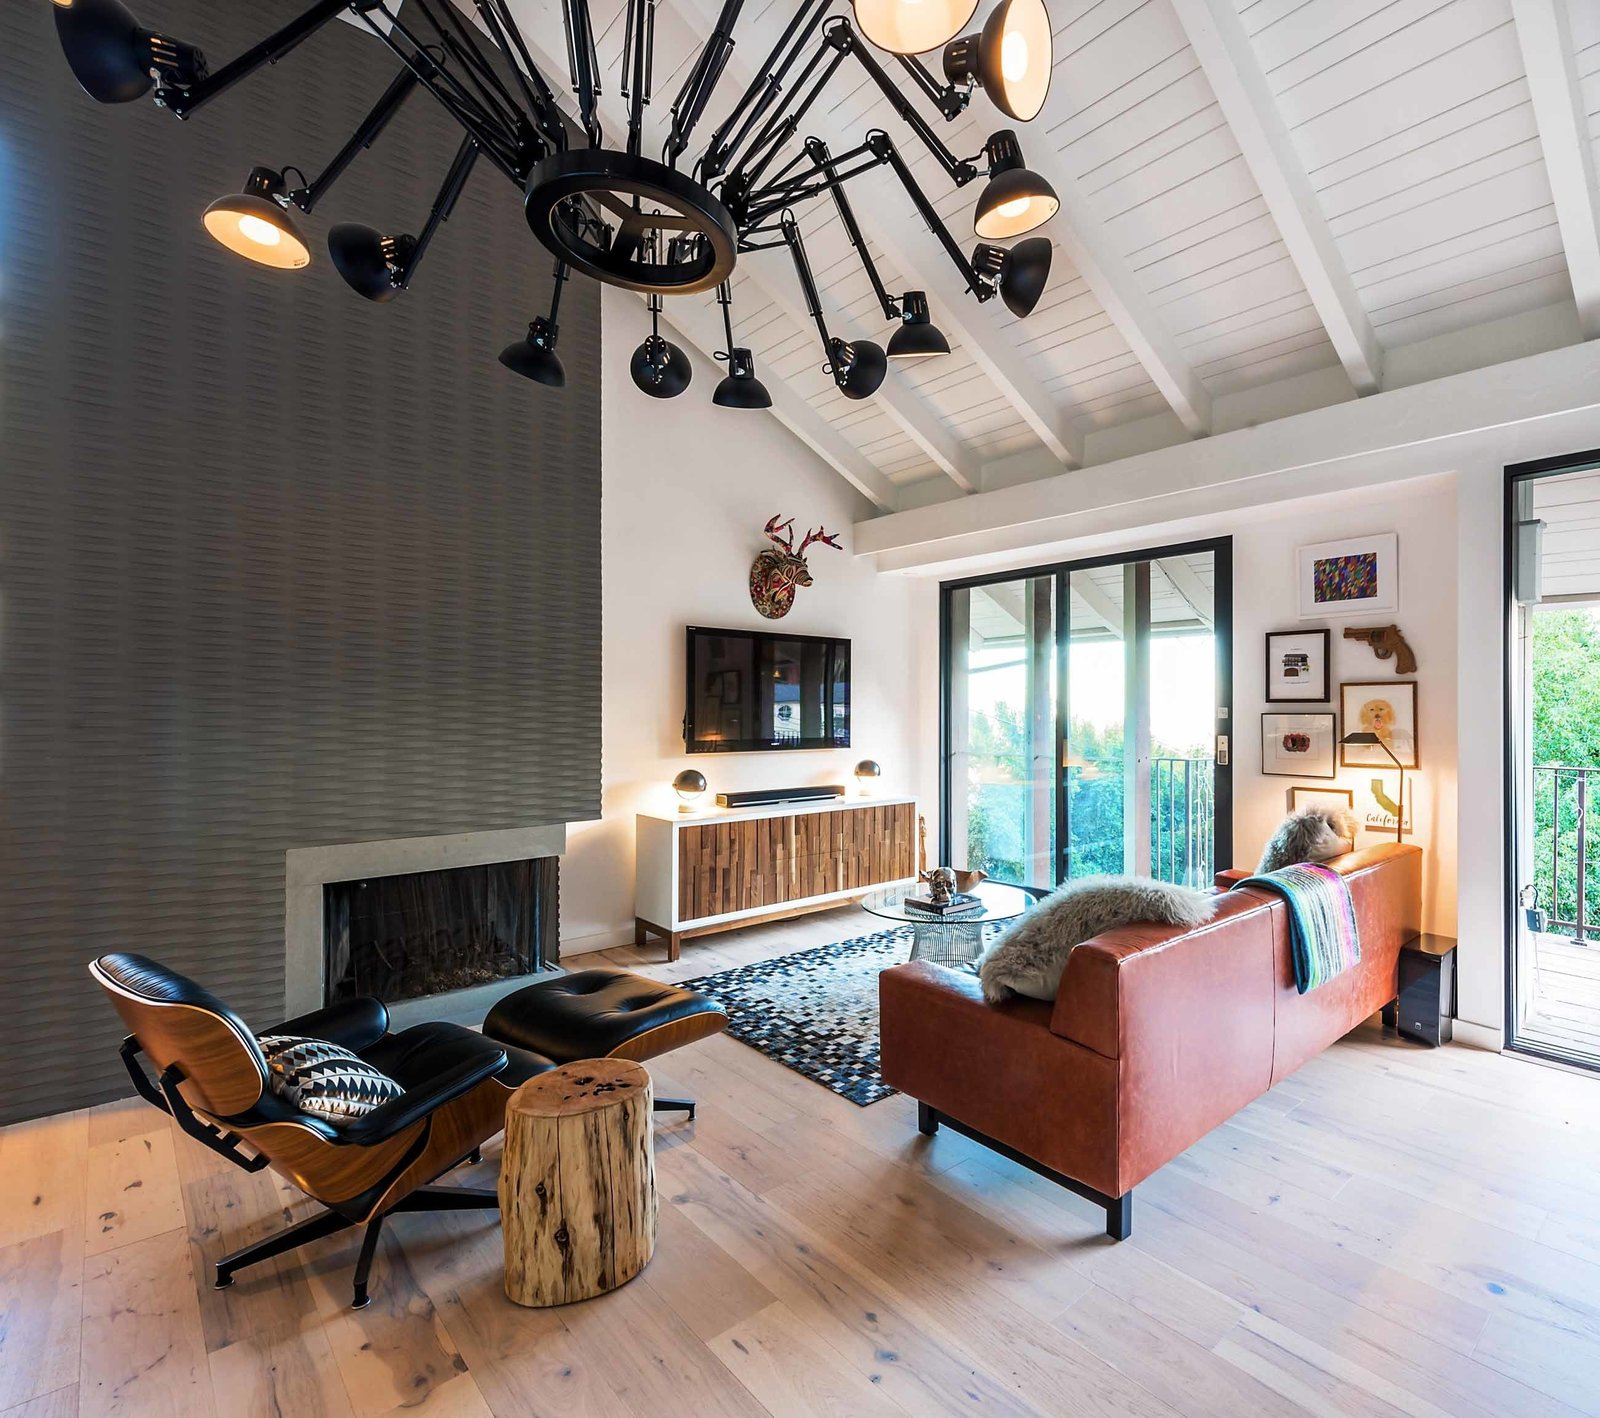 The main focal point of the living area is the oversized, spider-like chandelier—a bold statement that lights up the room. The furniture was sourced locally whenever possible, like the custom media cabinet from Weego Home, made with walnut.  Photo 2 of 6 in Playful Materials Refresh a Dated Hollywood Home